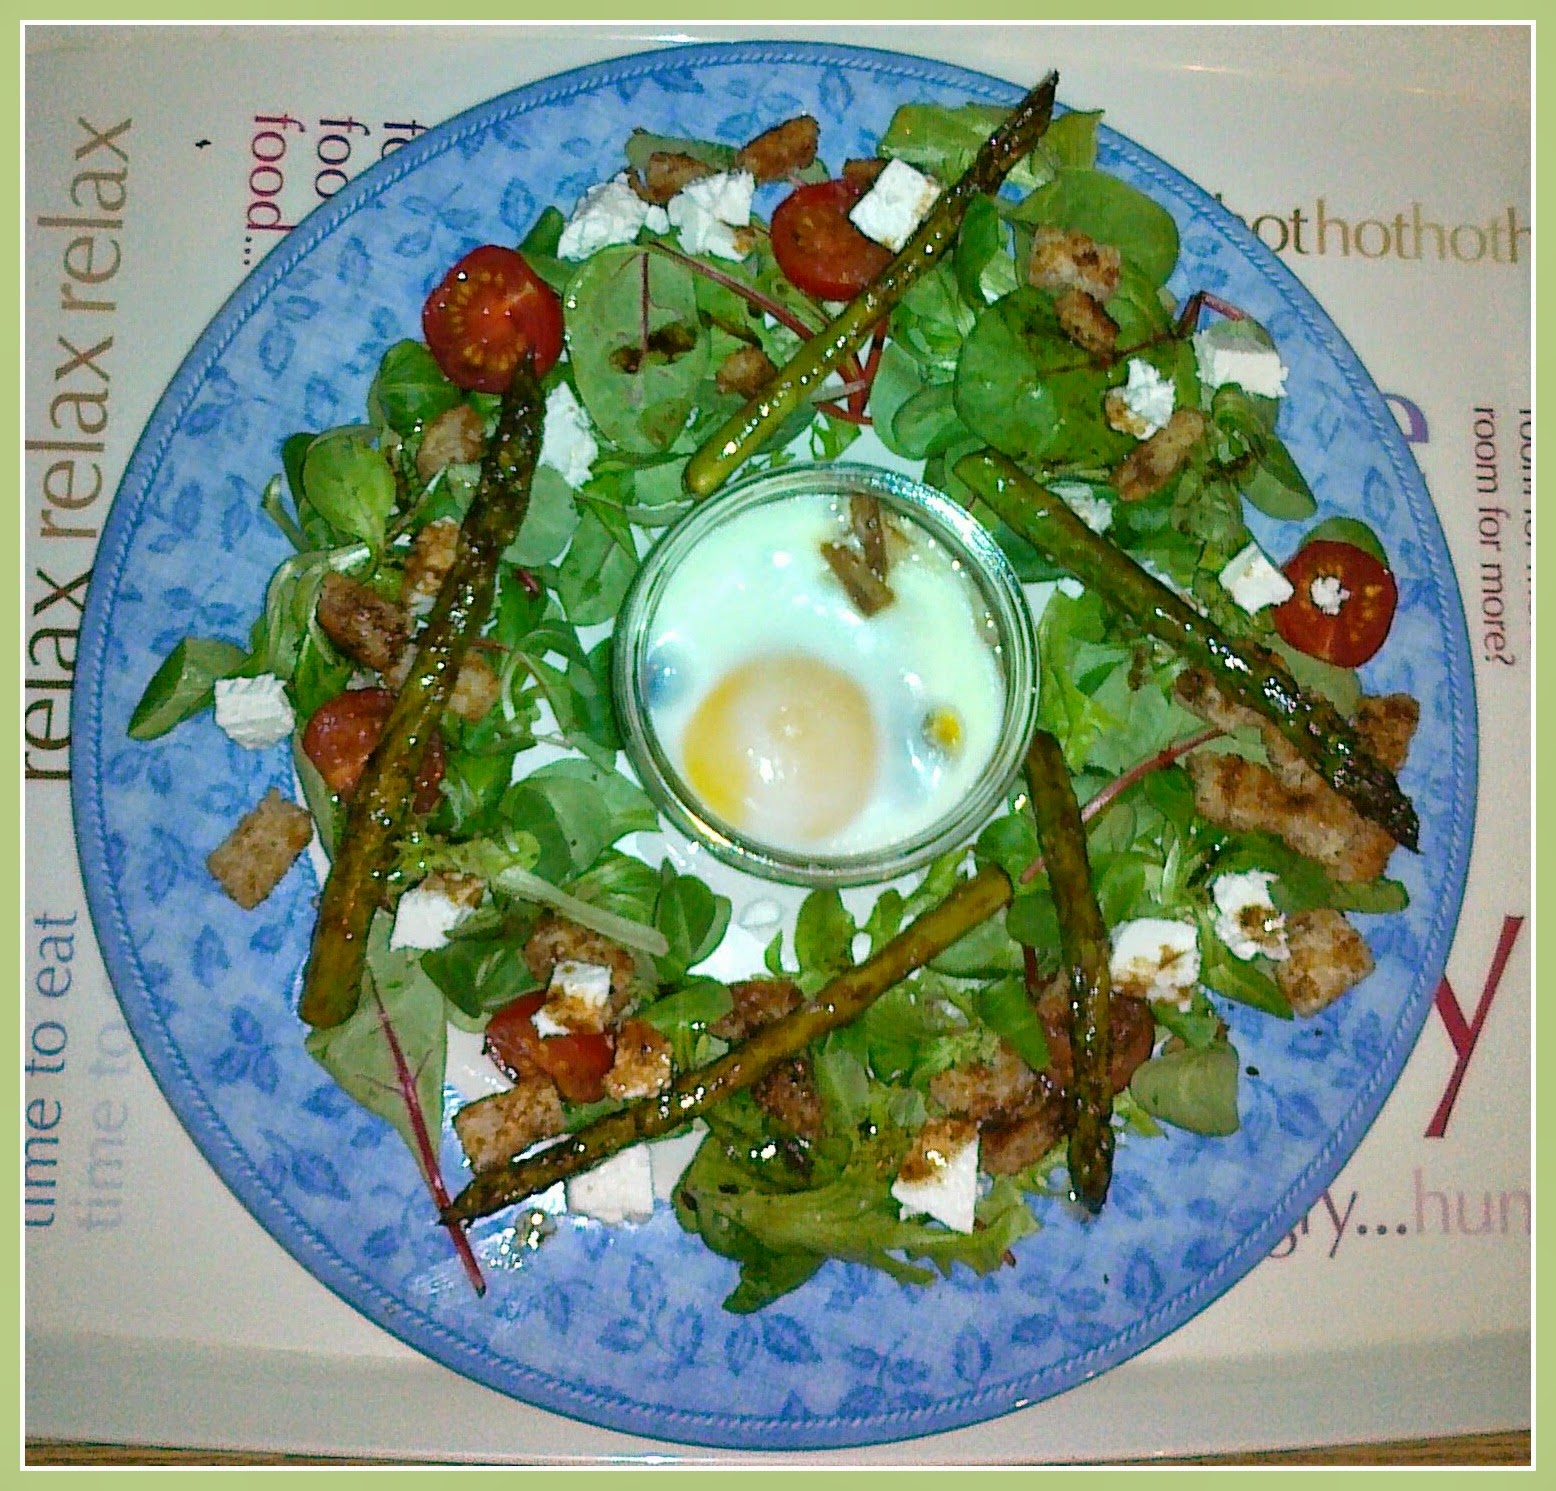 Asparagus Salad with Baked Egg